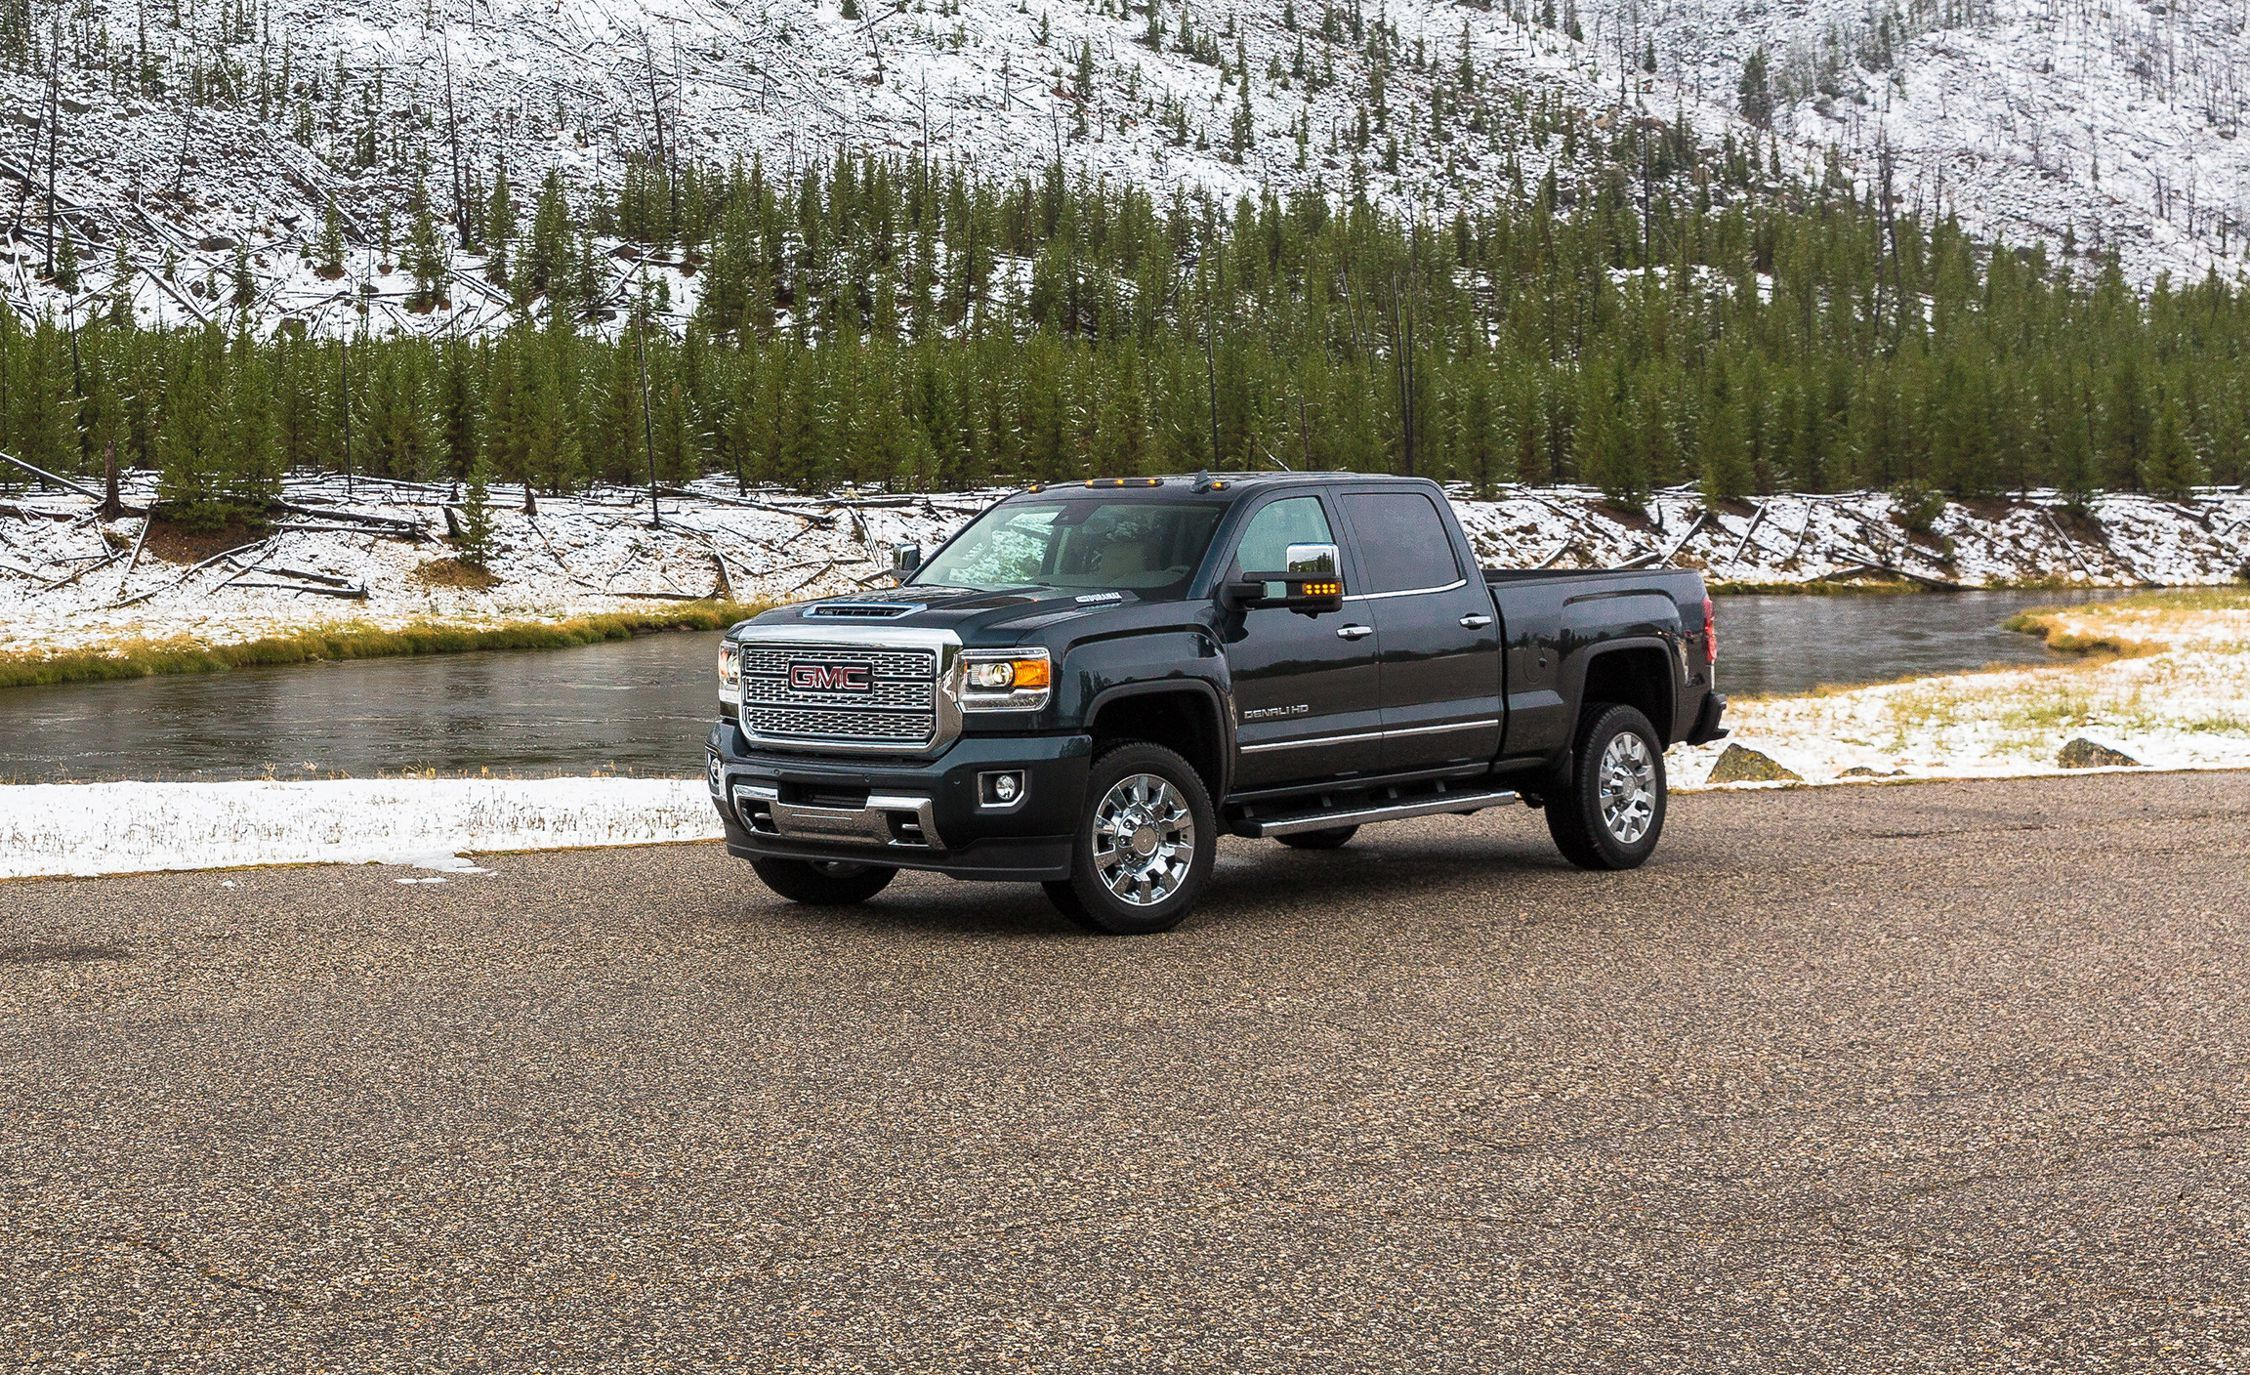 2019 Gmc Sierra Hd Review Pricing And Specs